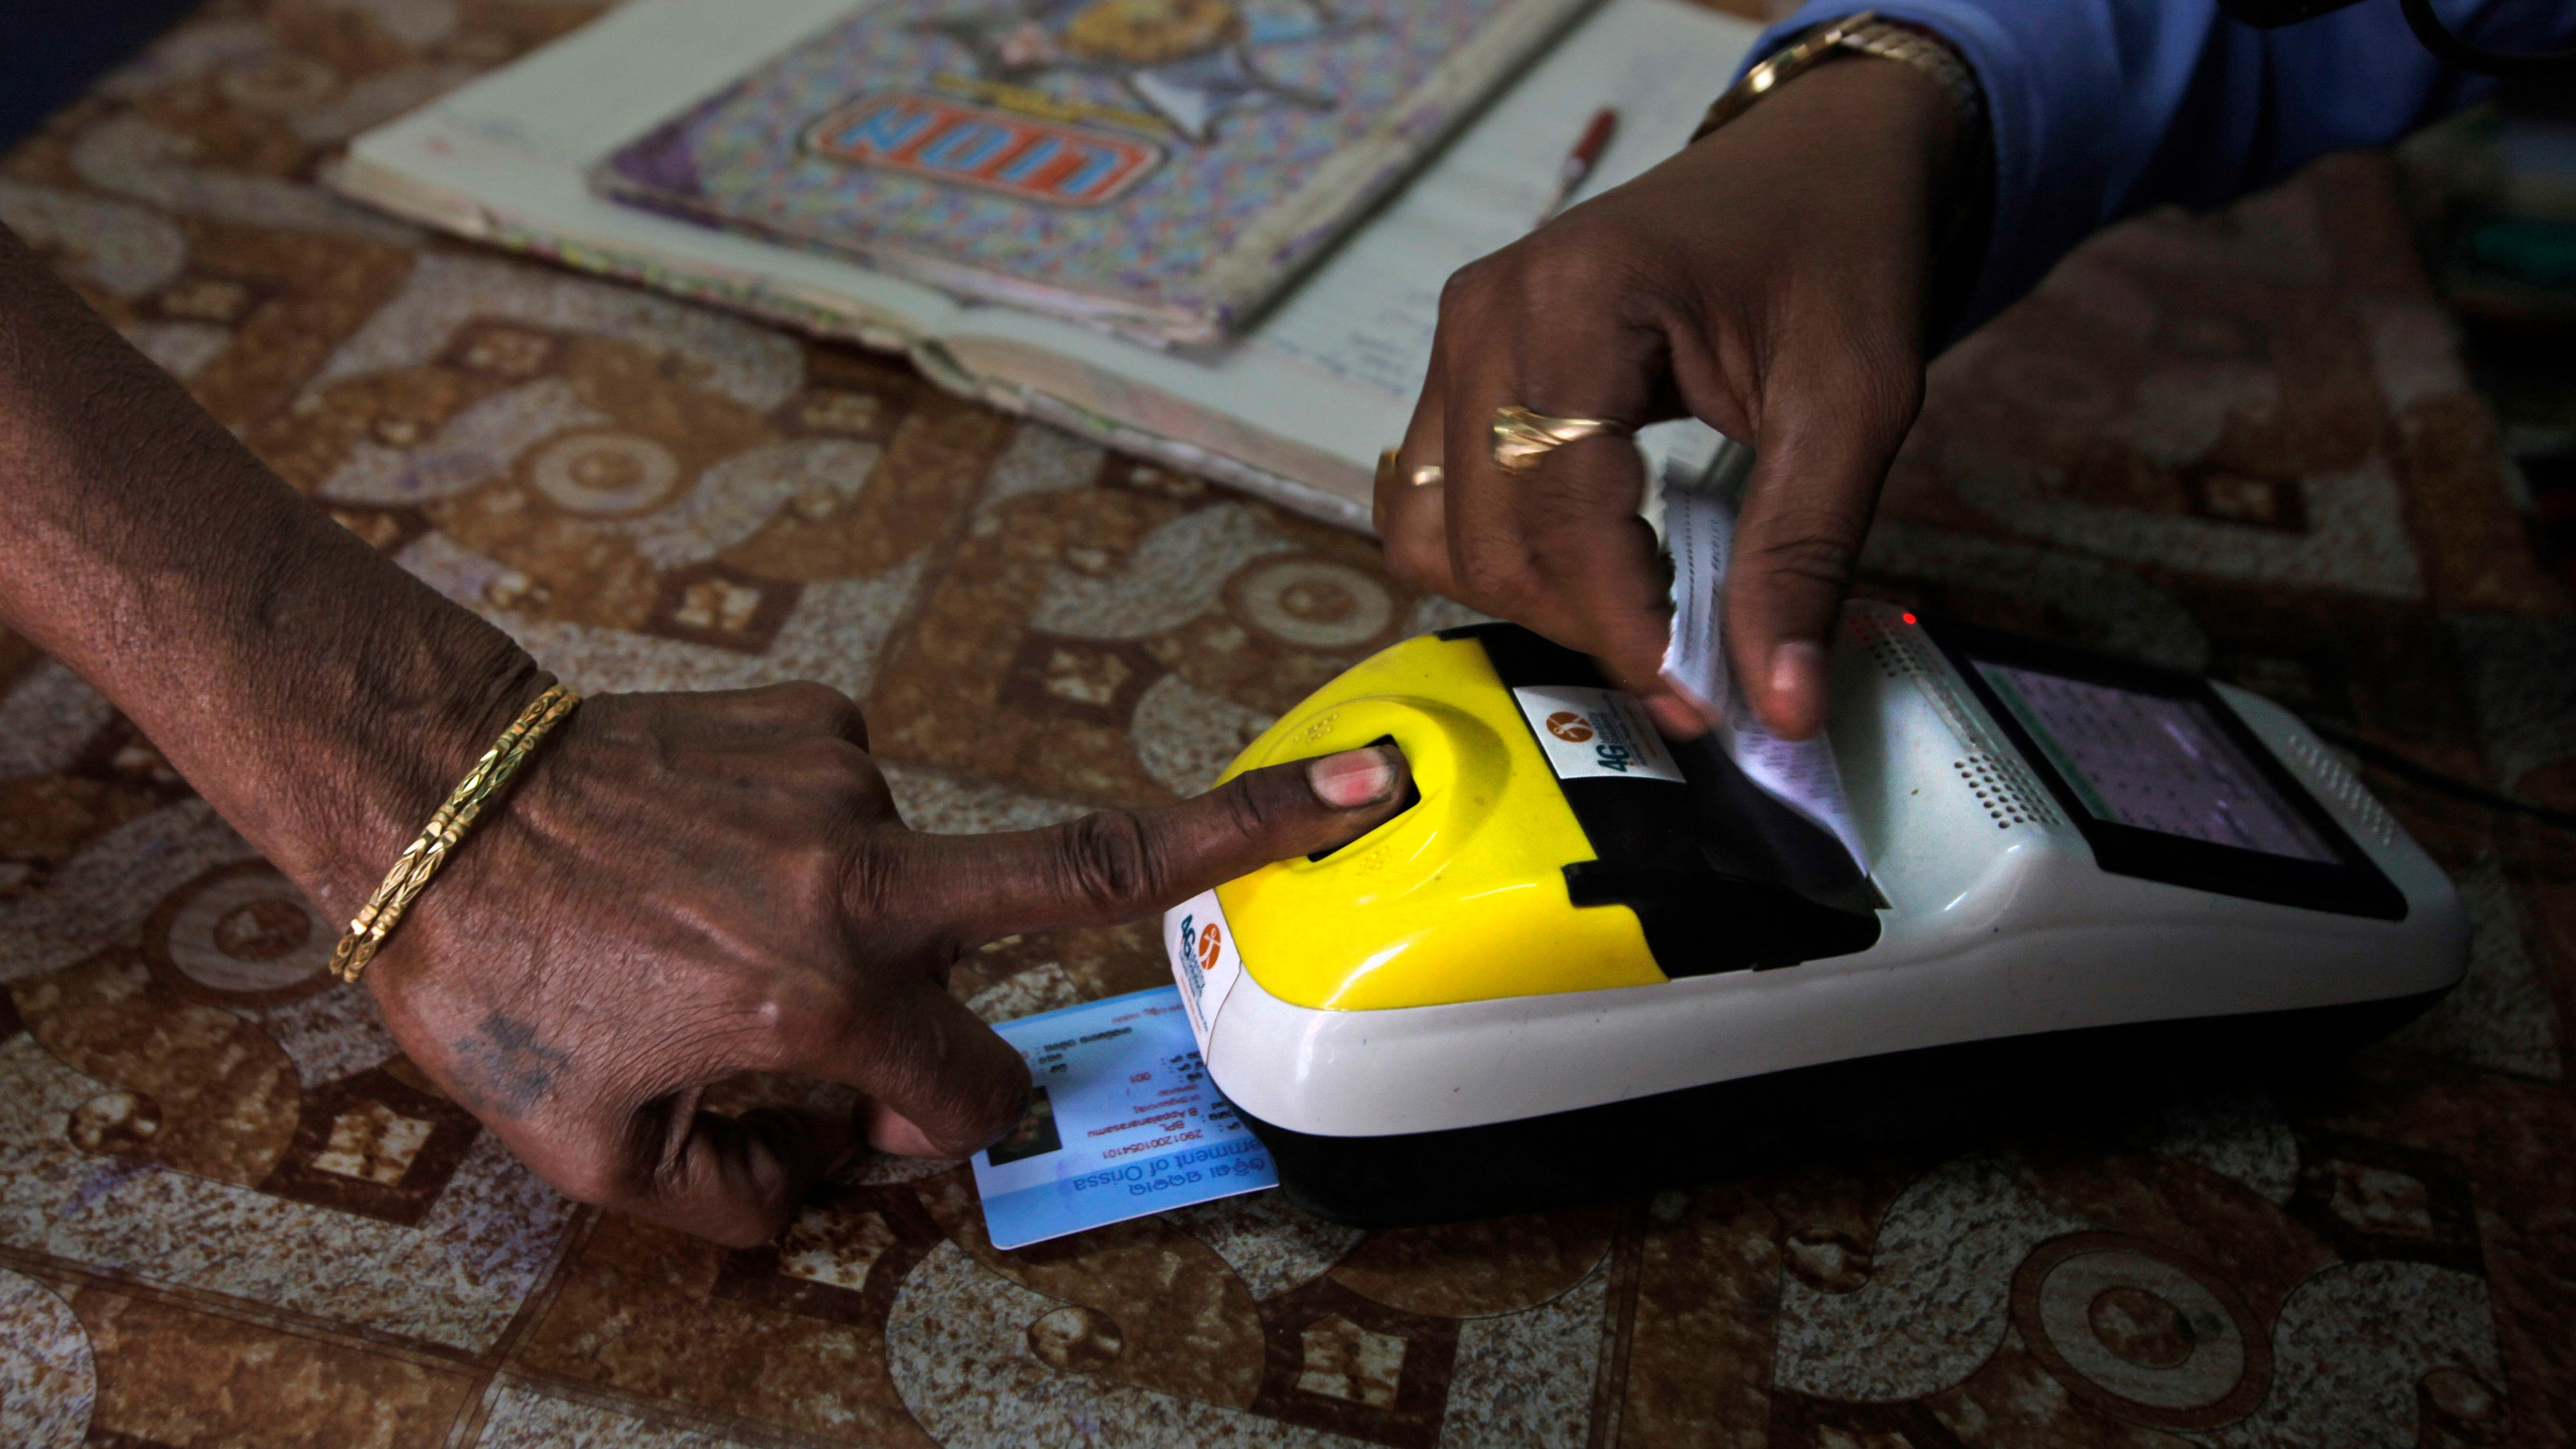 Simple Hack Turns India's Massive Biometric Database Into A Profitable Counterfeit System